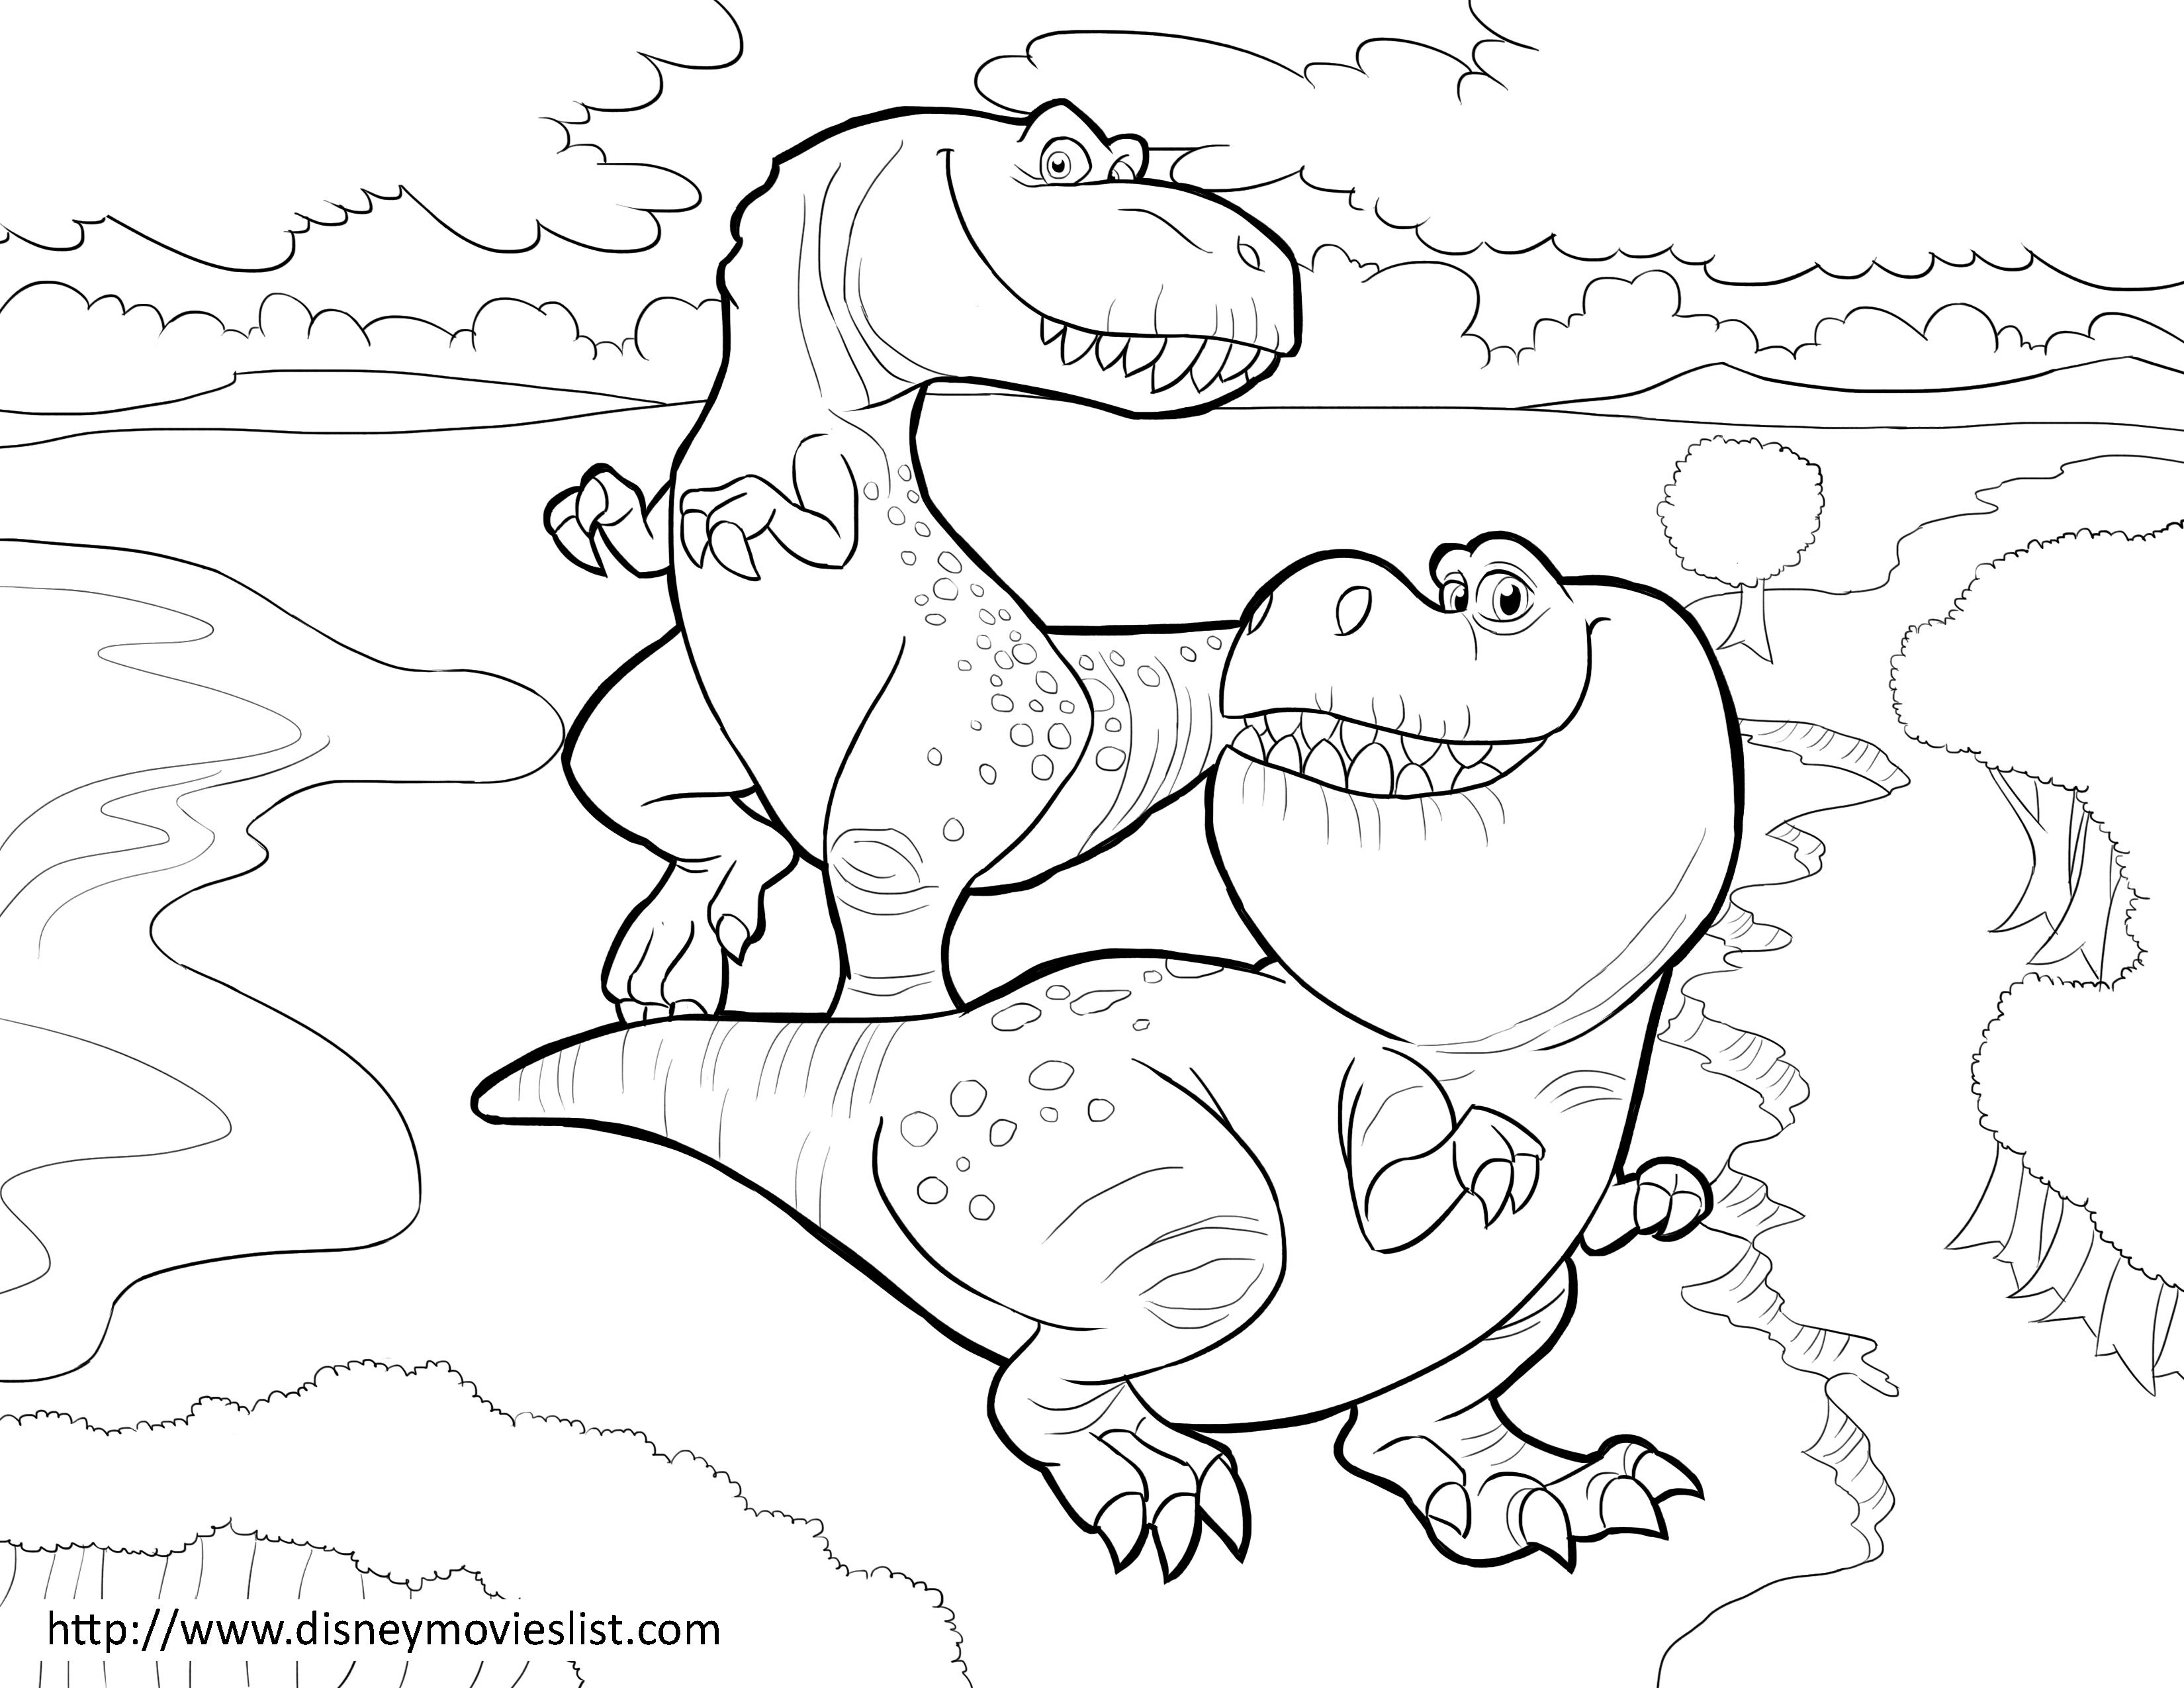 disney dinosaur coloring pages - photo#10